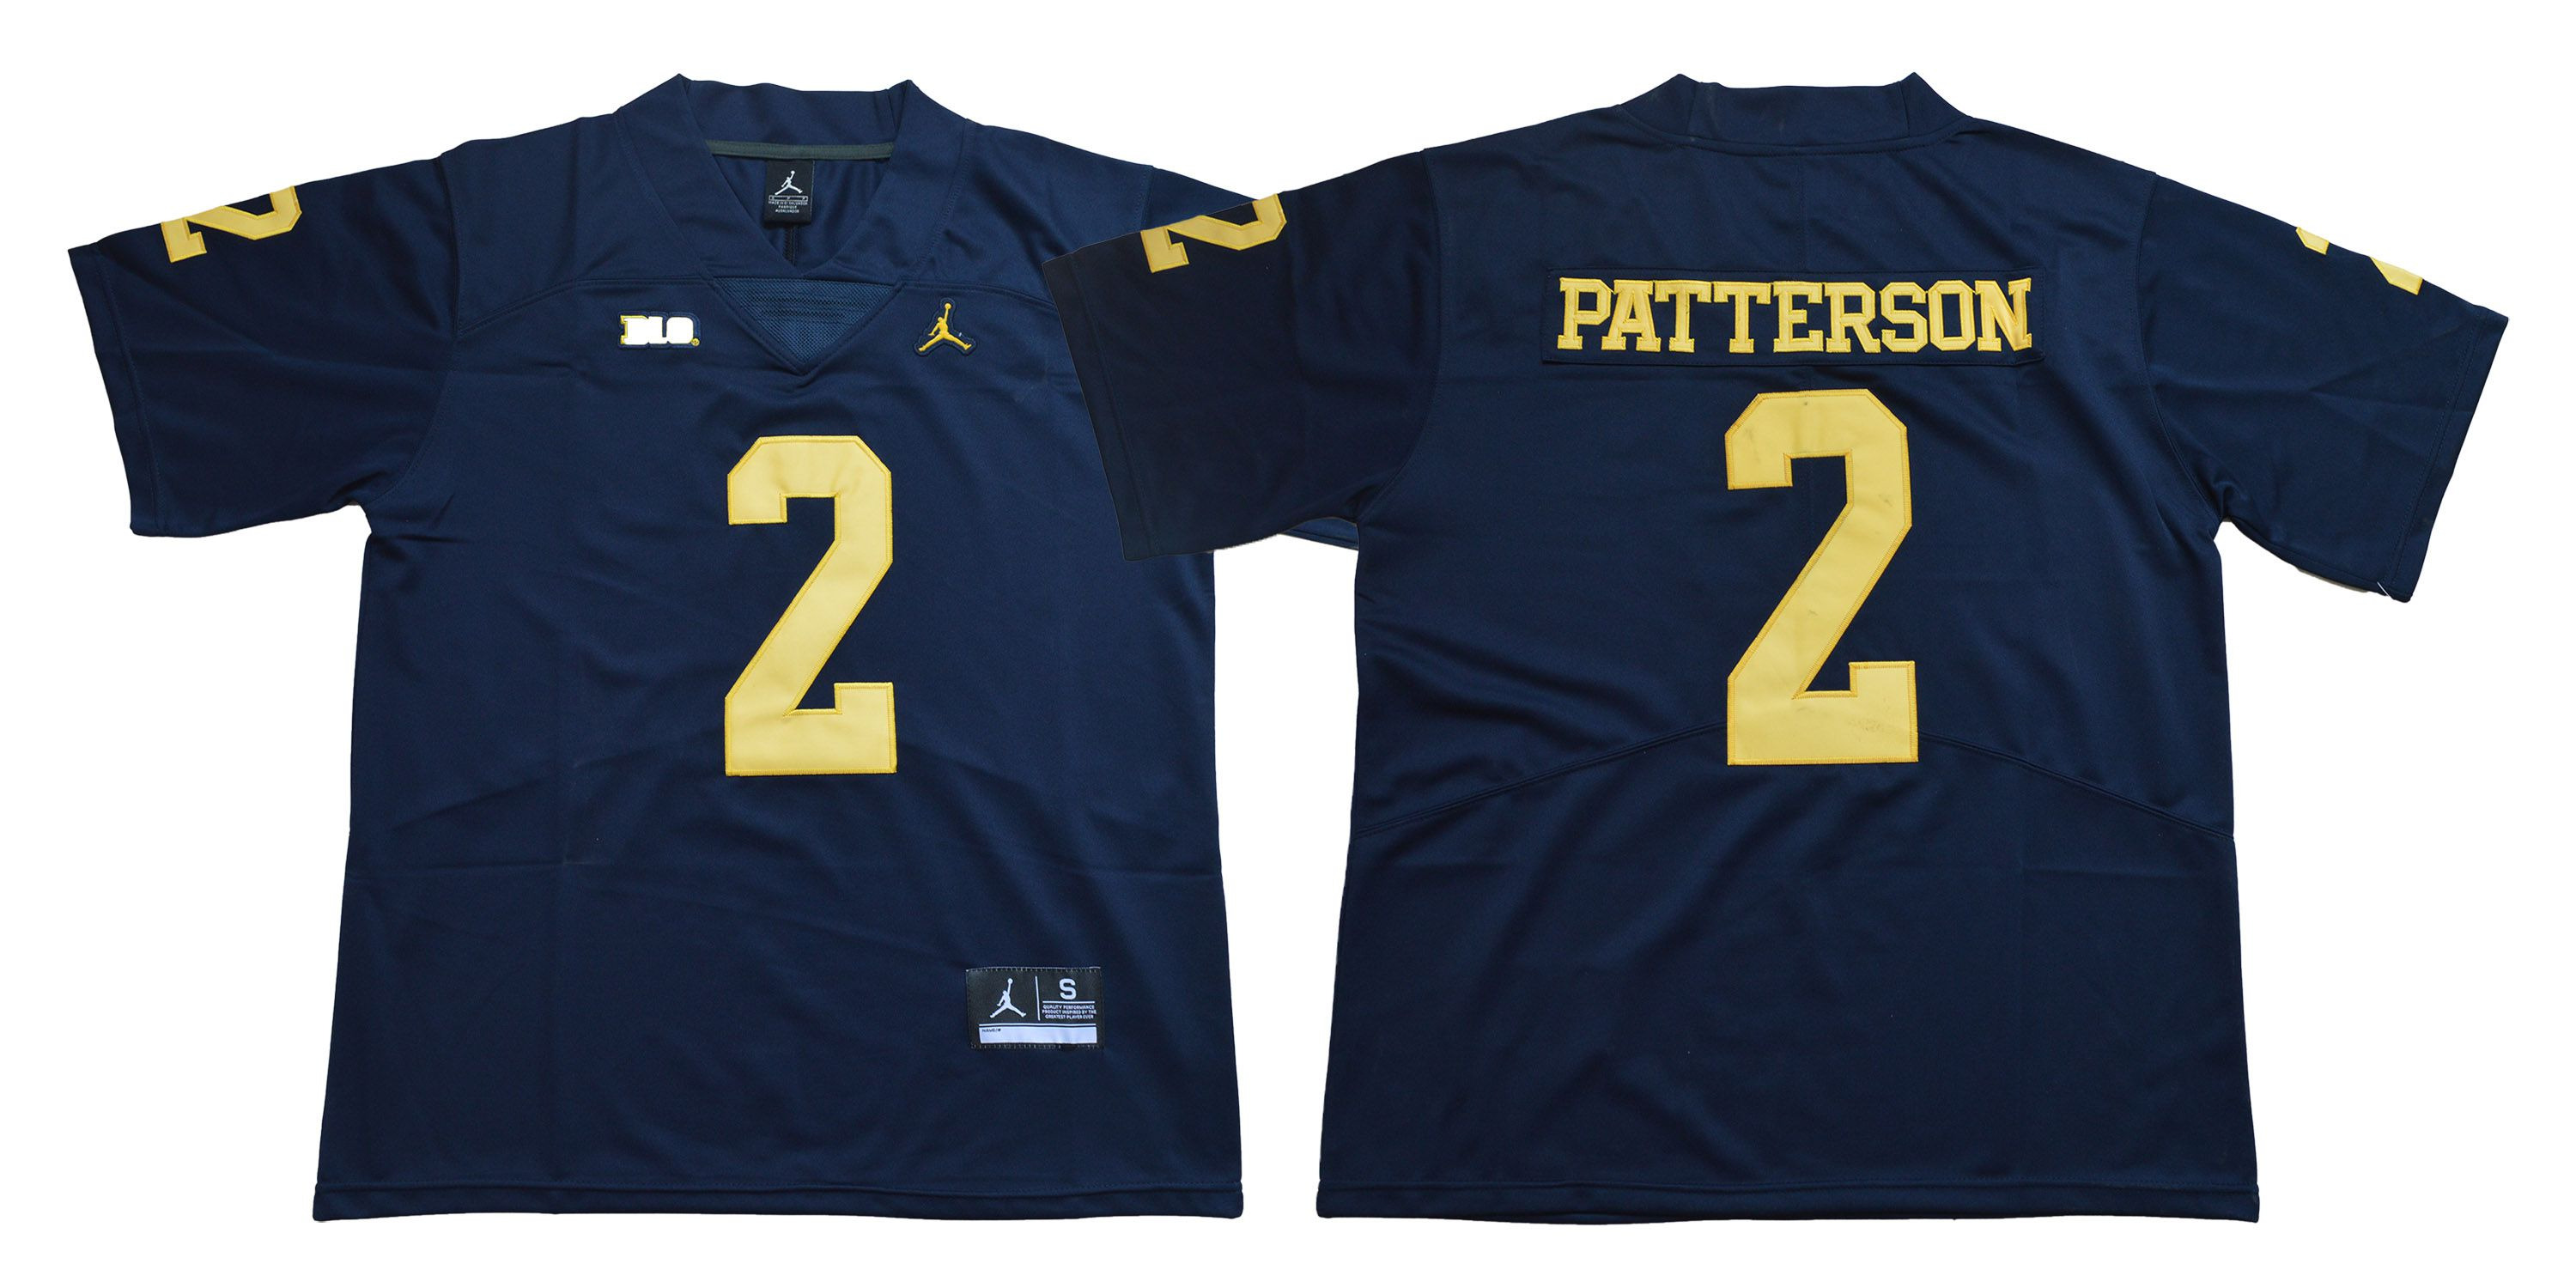 Men Michigan Wolverines 2 Patterson Blue NCAA Jerseys